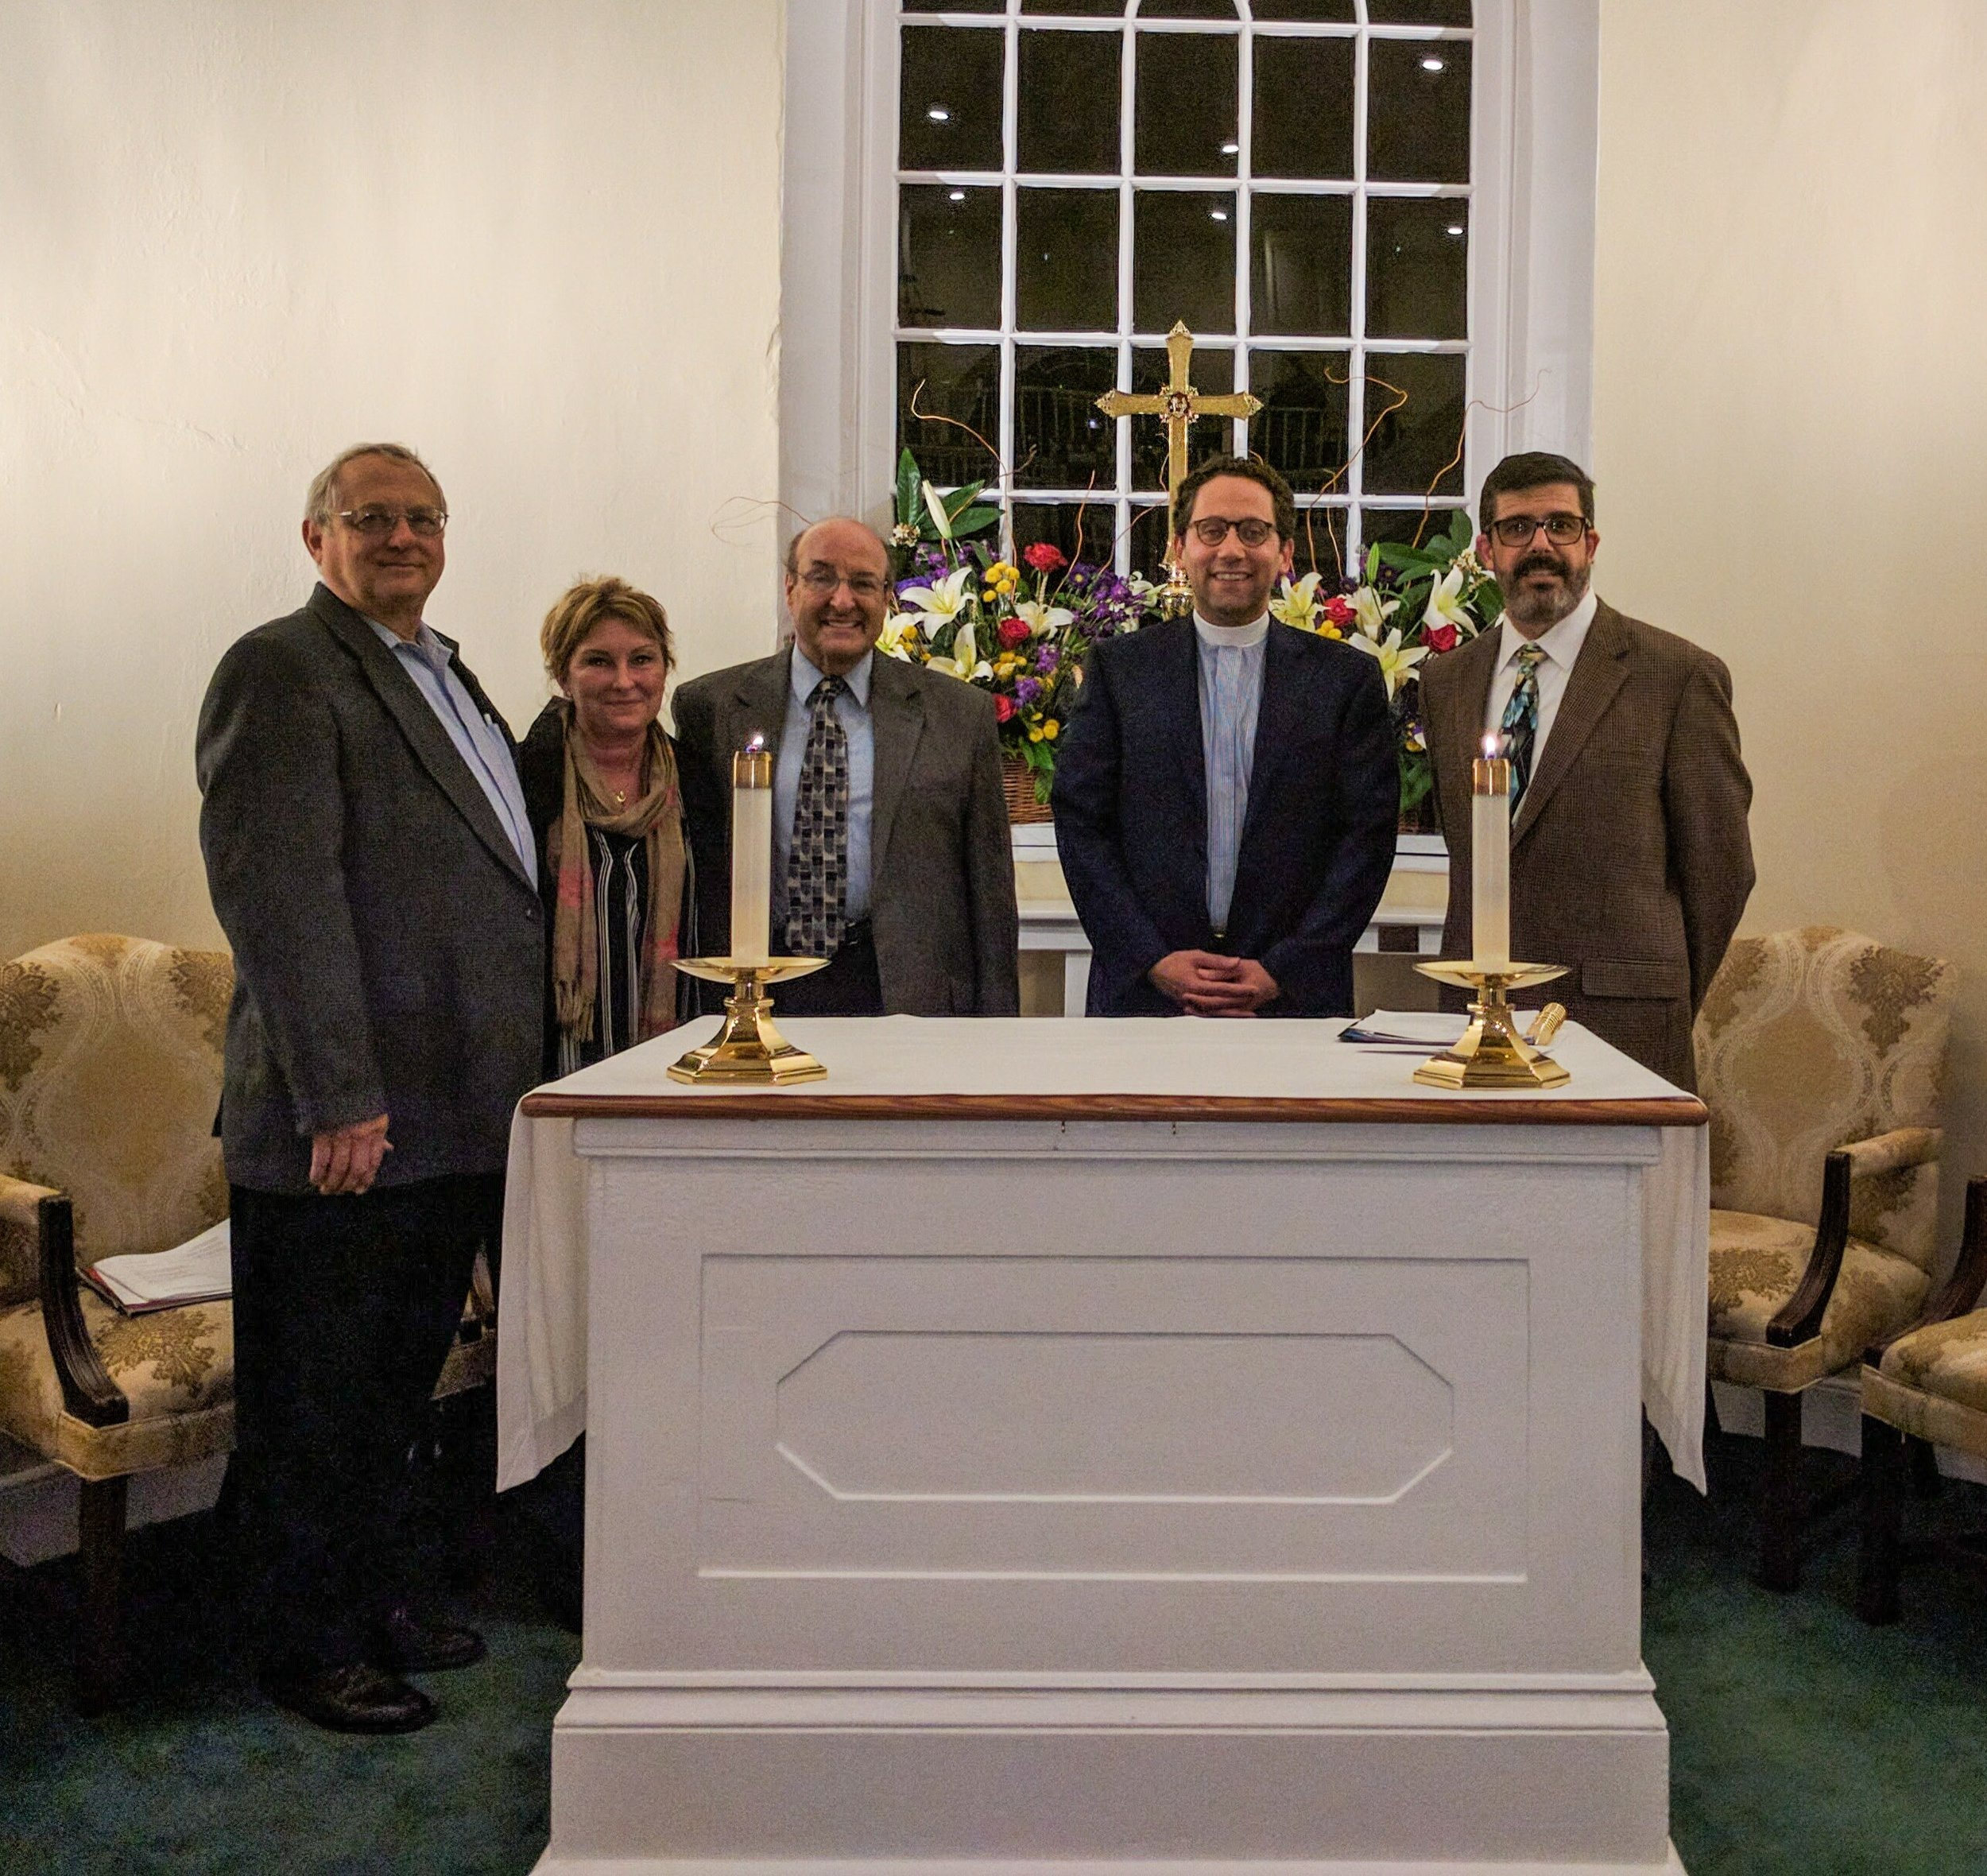 2017 Thanksgiving Service held at St. Stephen's Episcopal Church.